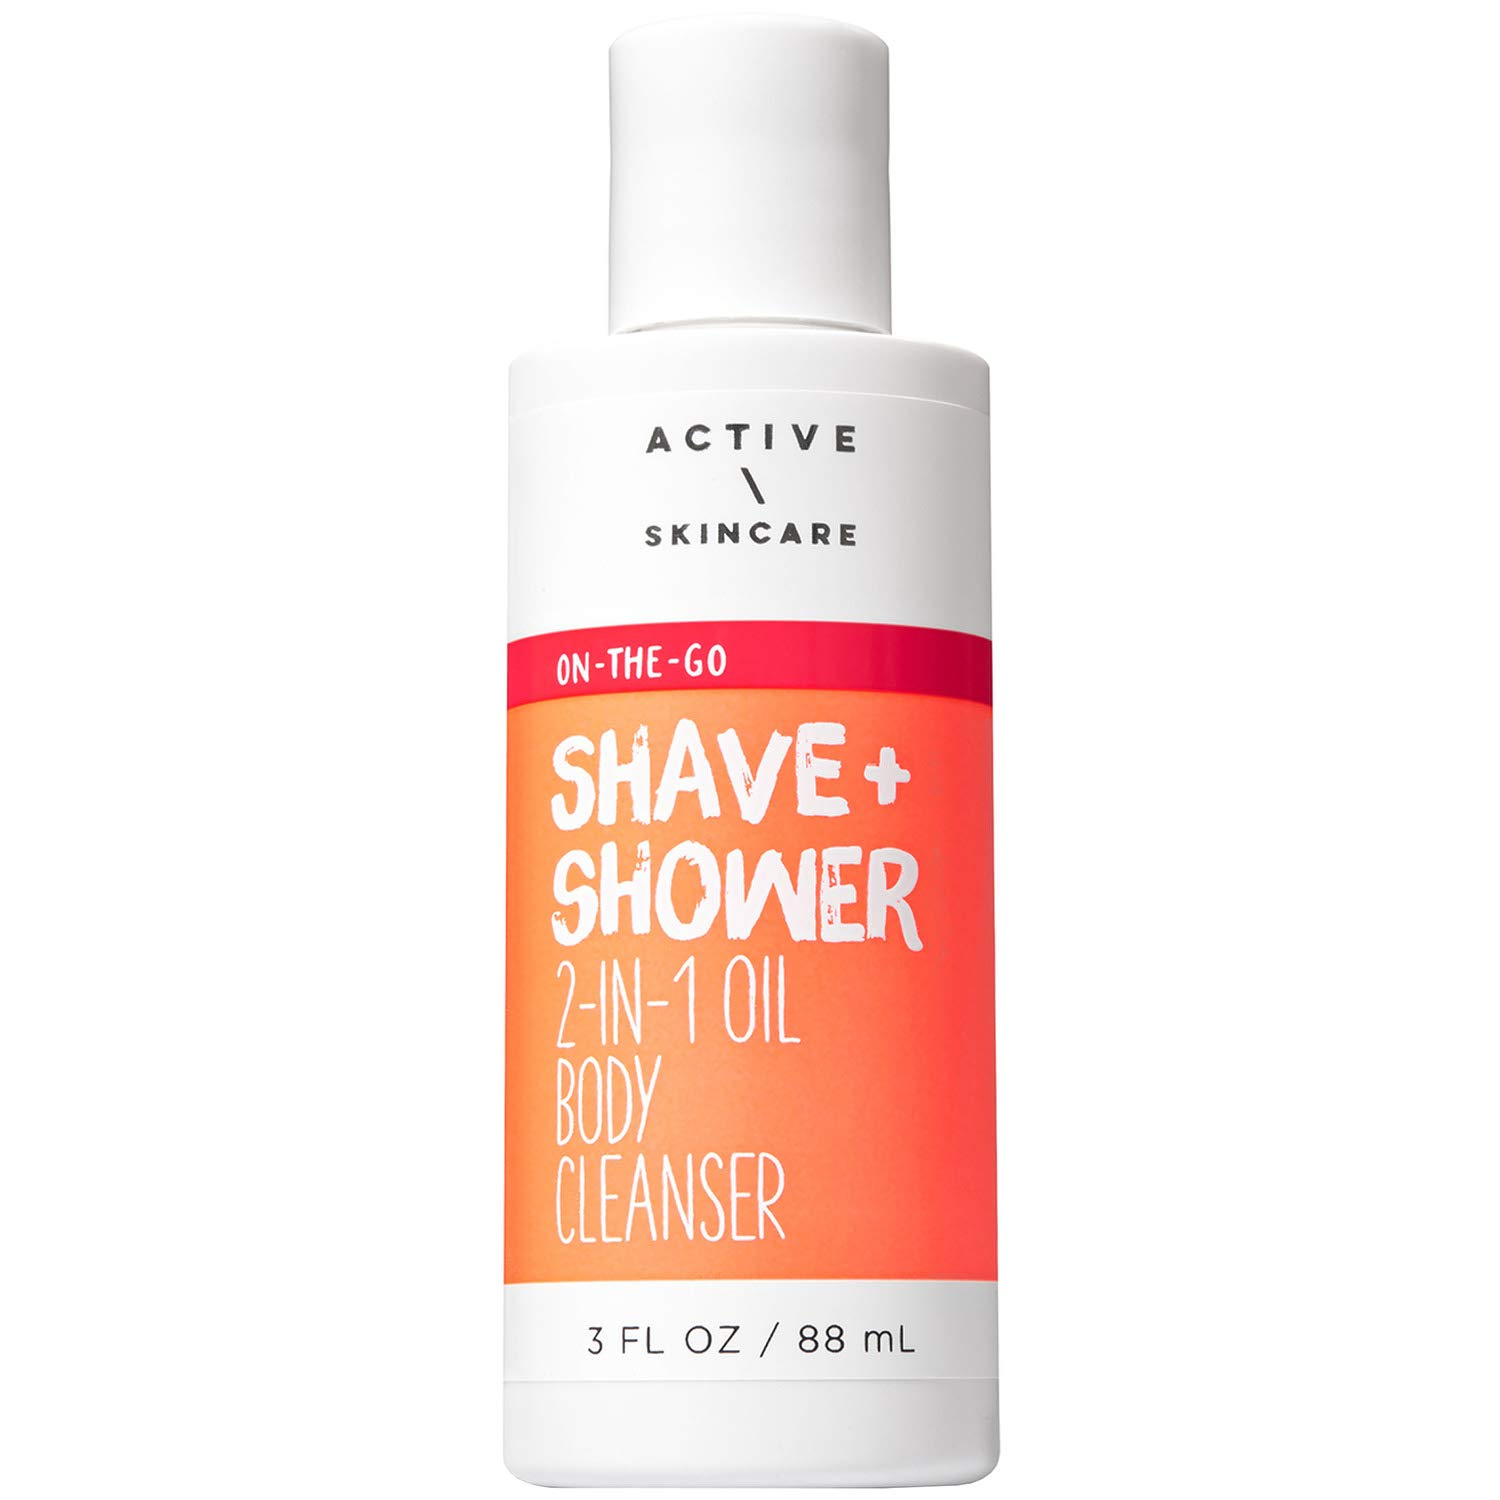 Bath and Body Works Active \ Skincare SHAVE + SHOWER Mini 2-in-1 Oil Body Cleanser 3 Fluid Ounce